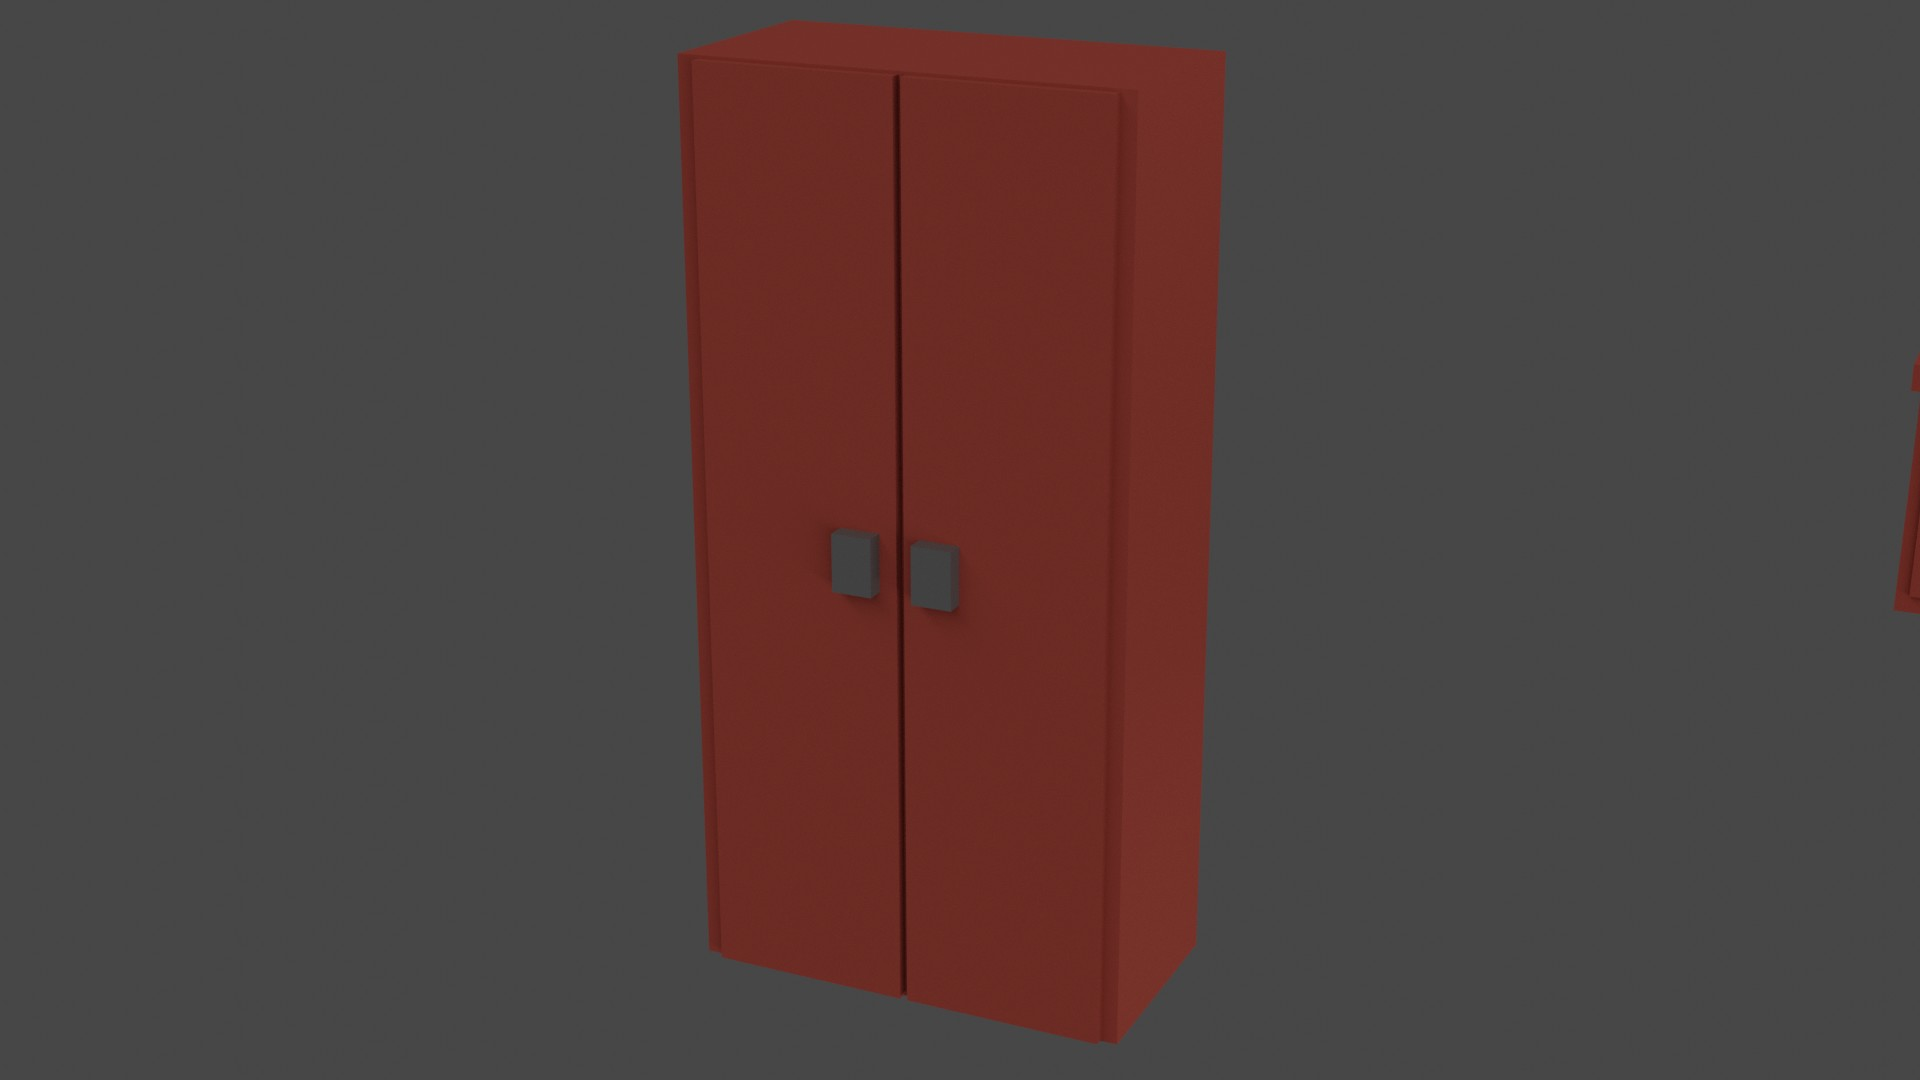 Low Poly Red Furniture 4